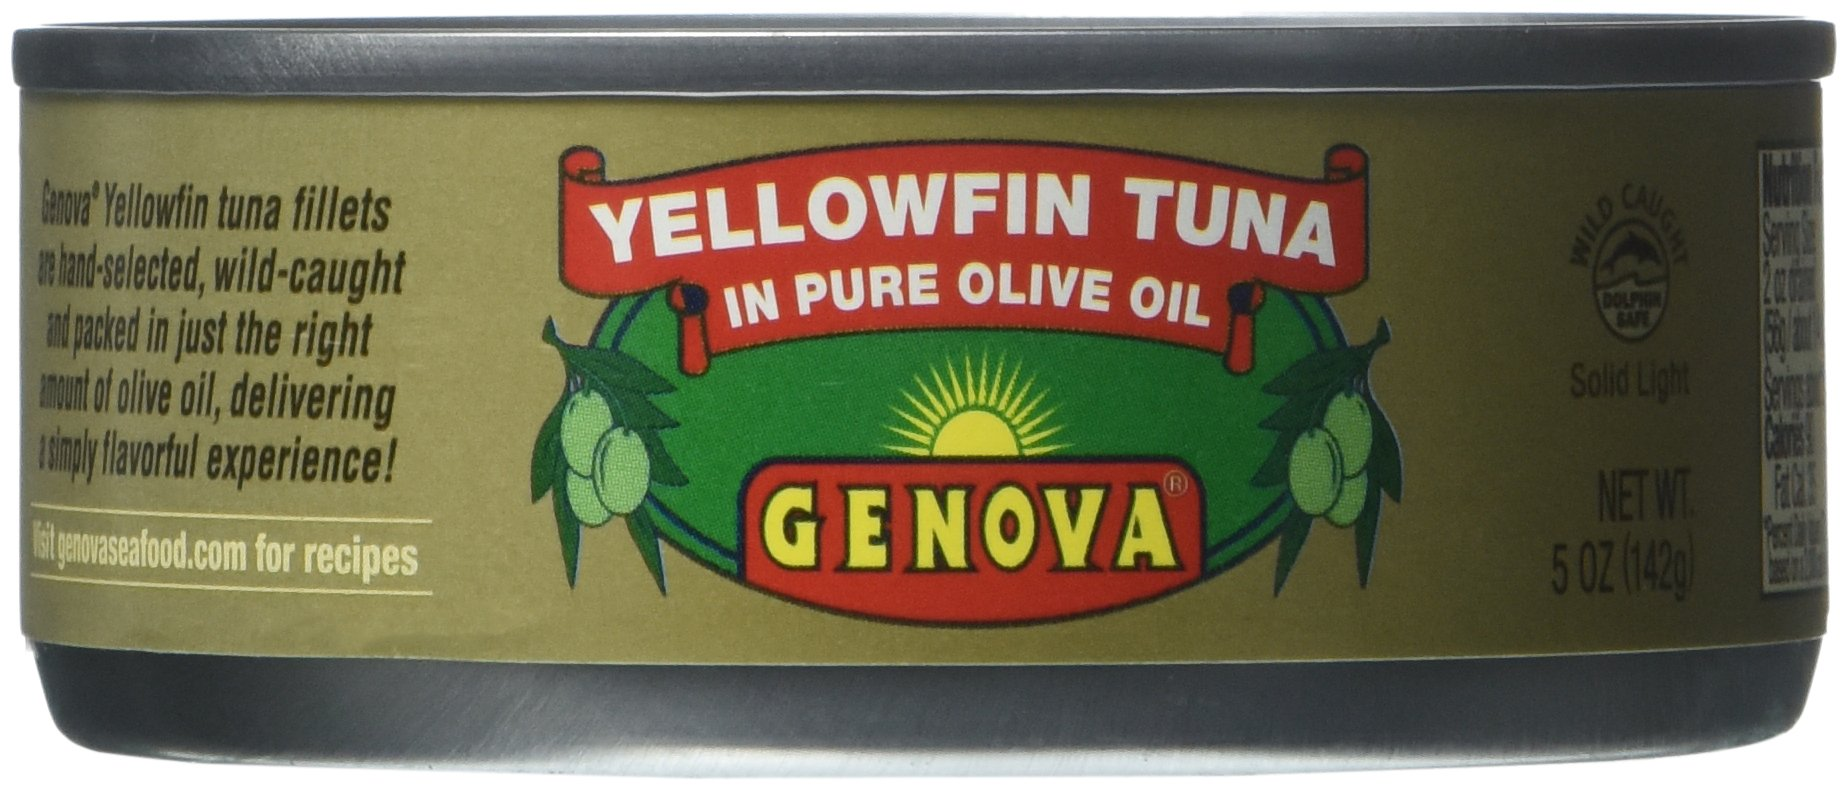 Genova, Yellowfin Tuna in Pure Olive Oil, 5-Ounce (Pack of 24)